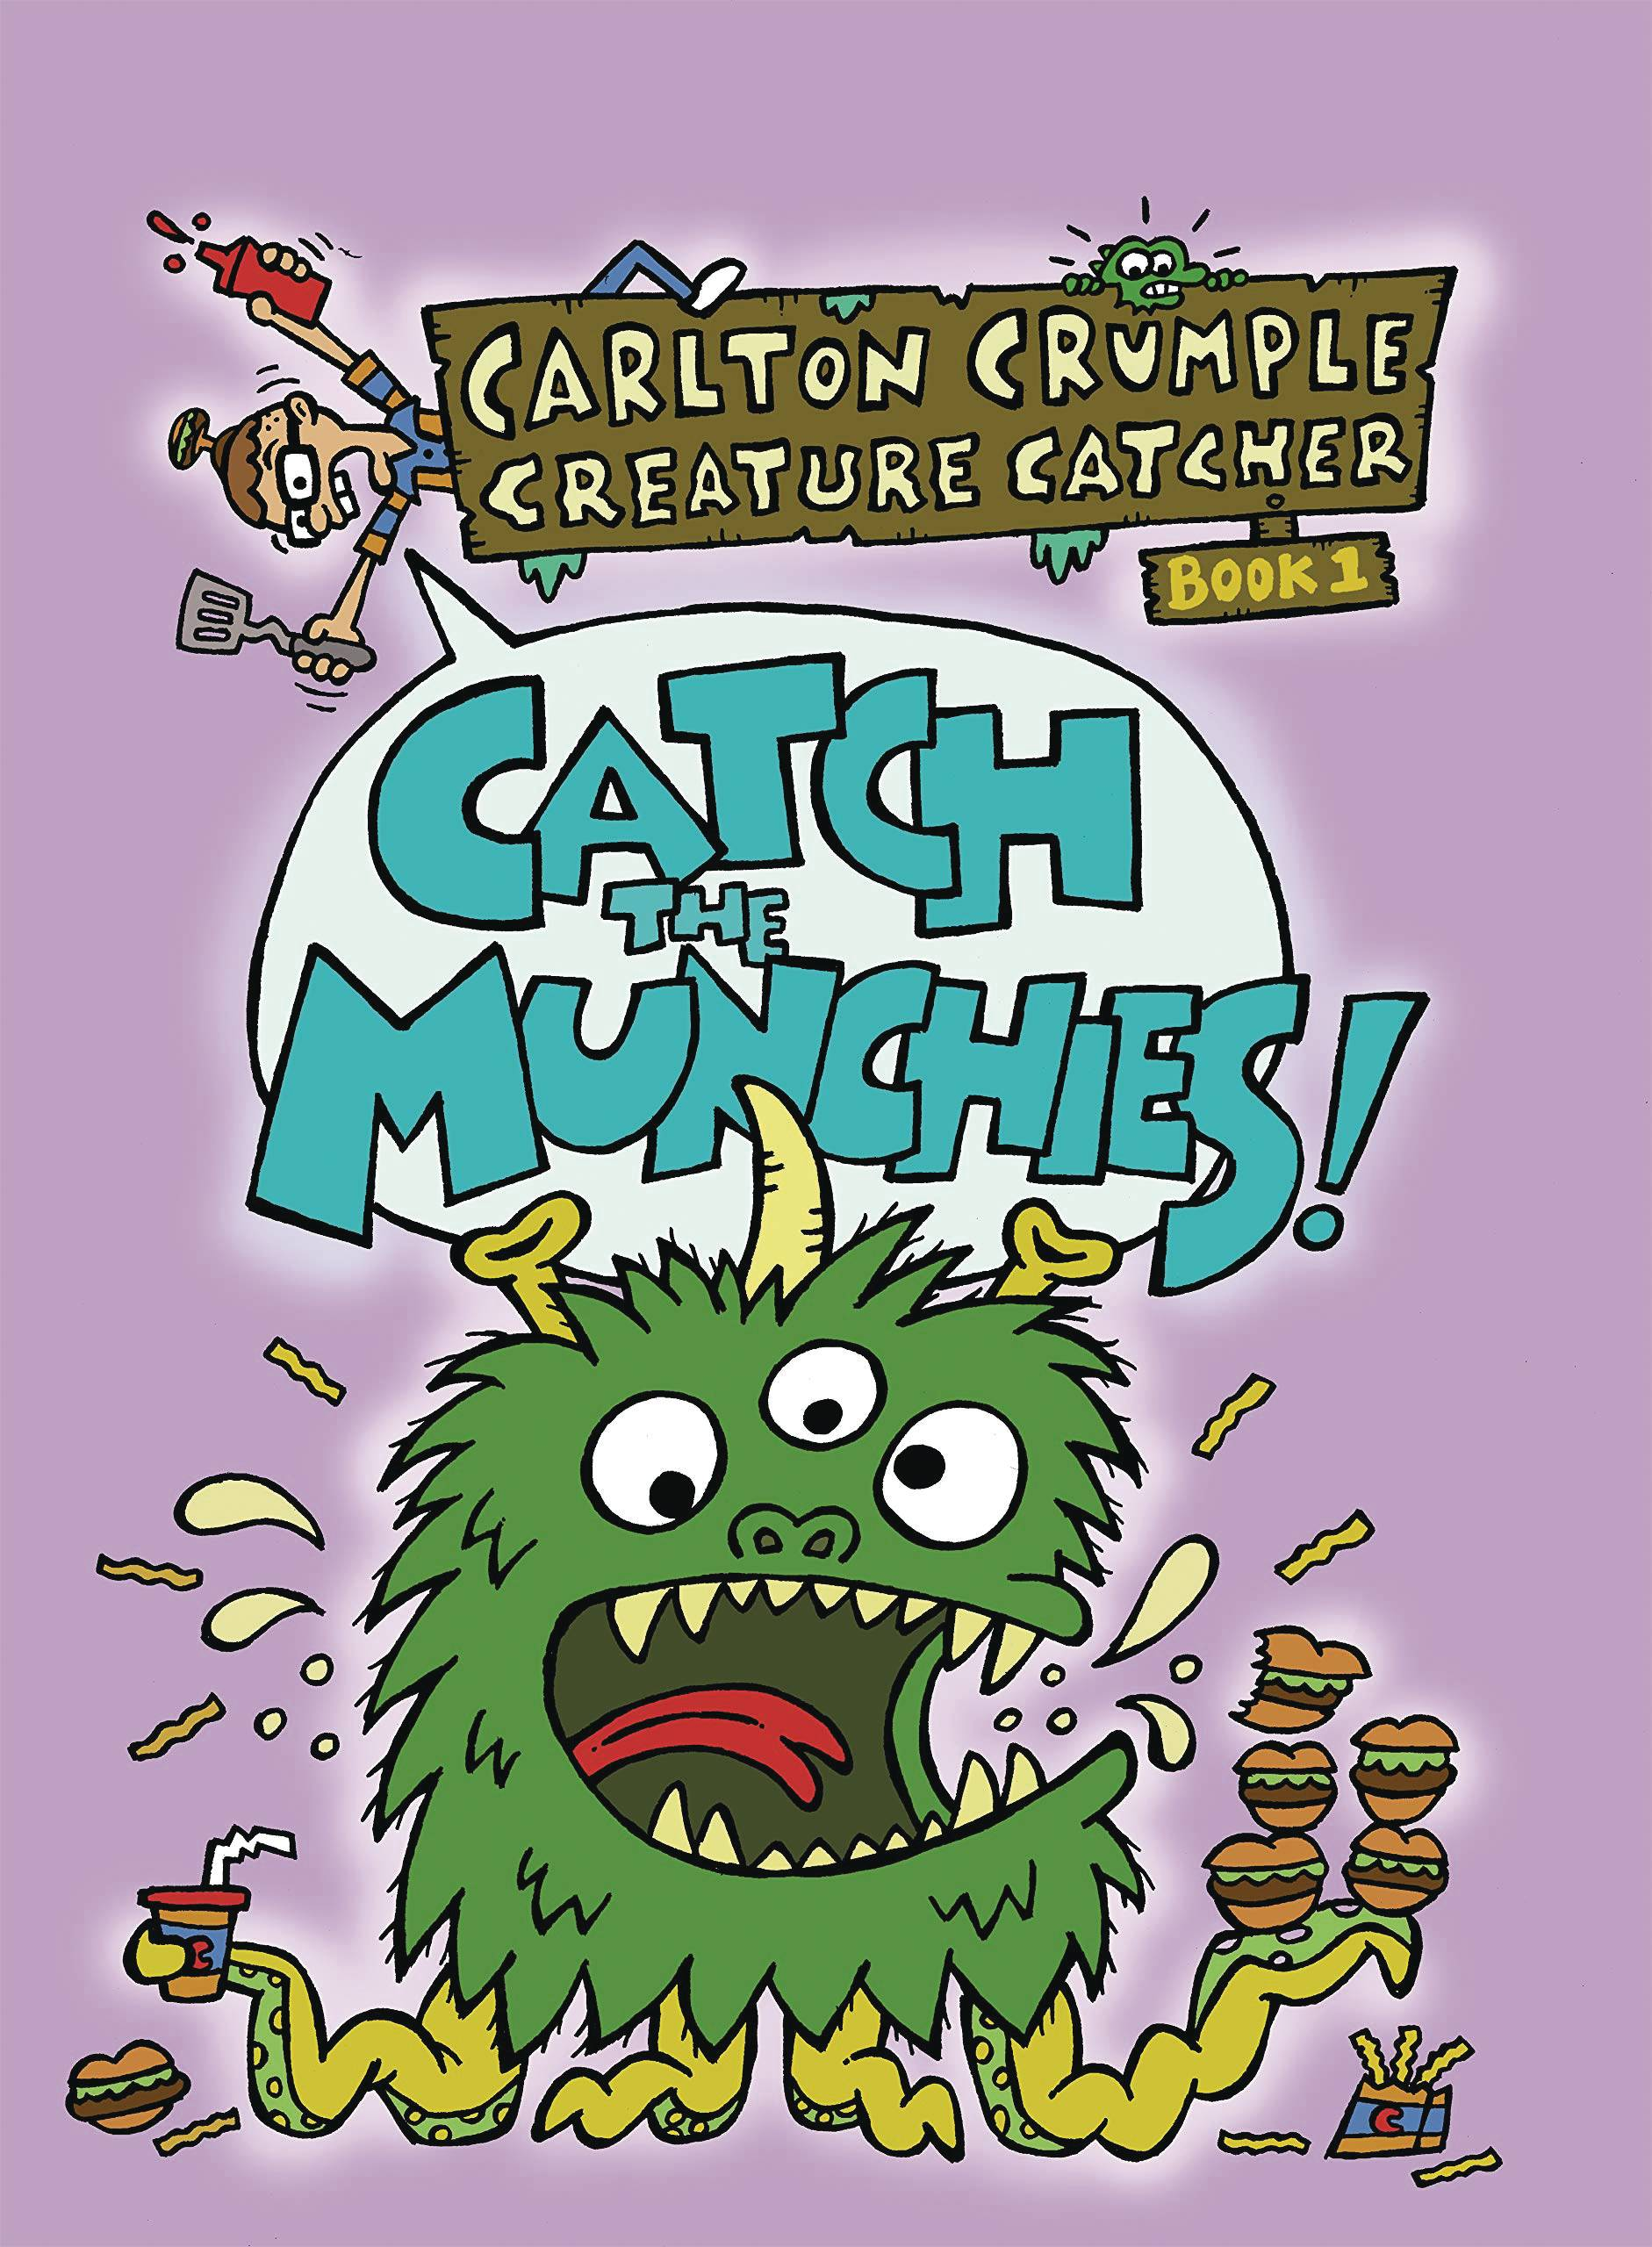 CARLTON CRUMPLE CREATURE CATCHER YA GN BOOK 01 CATCH MUCHCHI | Phoenix Comics and Games